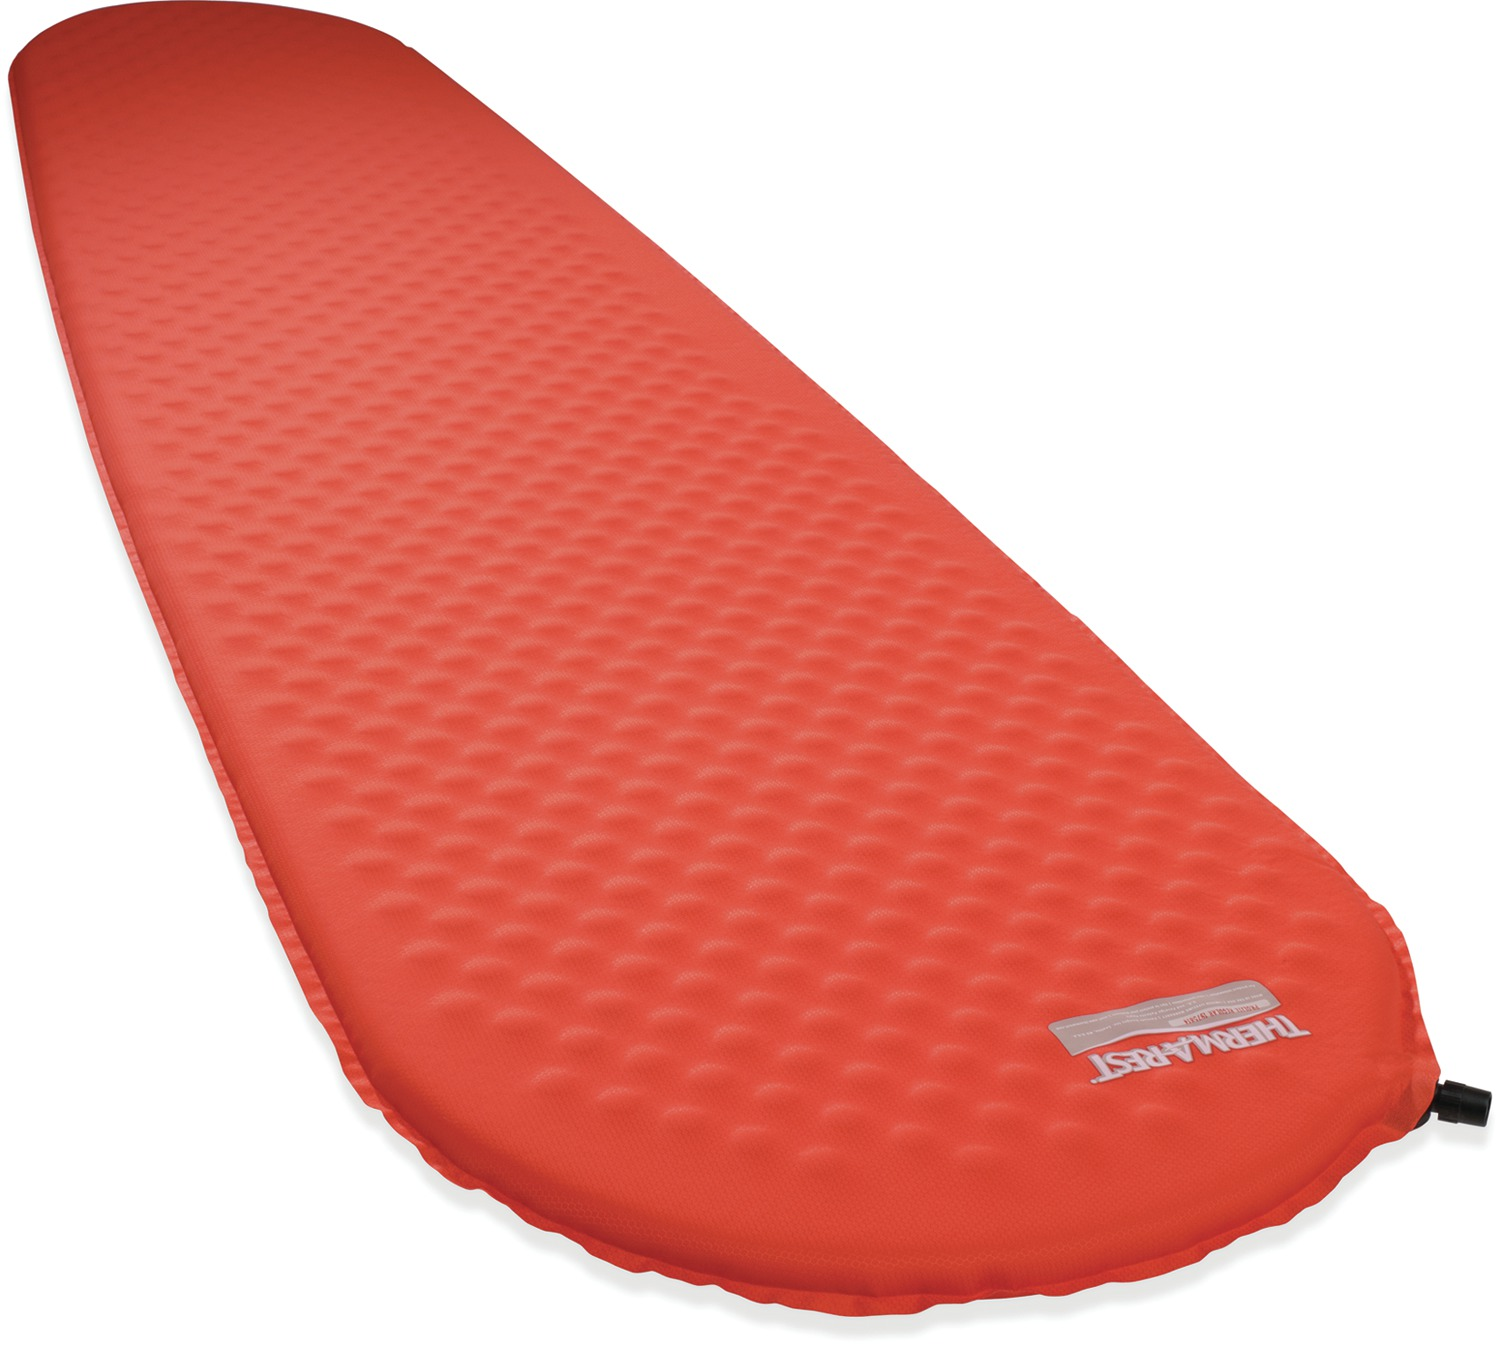 Therm-A-Rest - ProLite Xtra Small Updated - Thermal Air Mattresses -